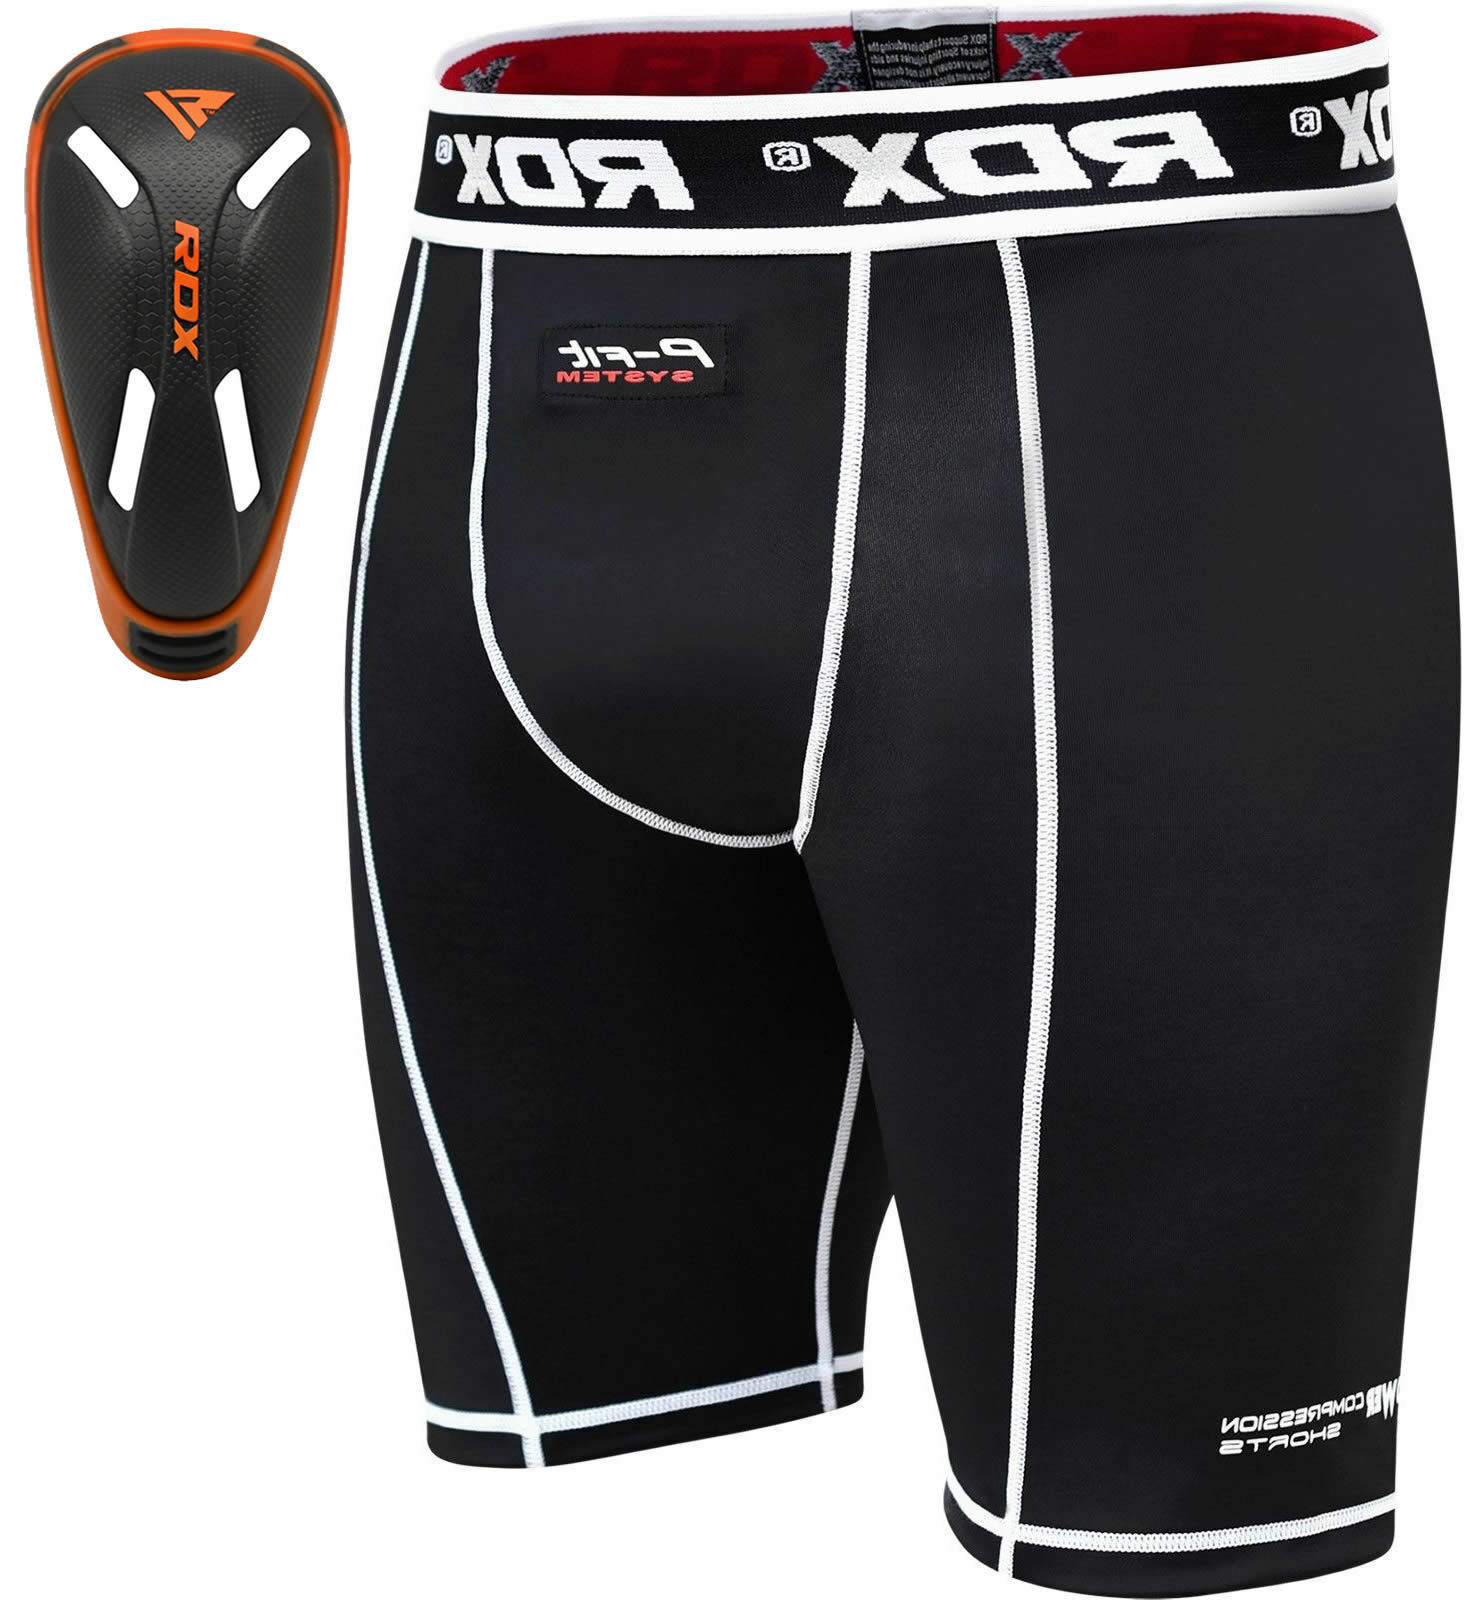 RDX Thermal Compression Flex Shorts & Gel Groin Cup Guard MMA Boxing Muay Thai